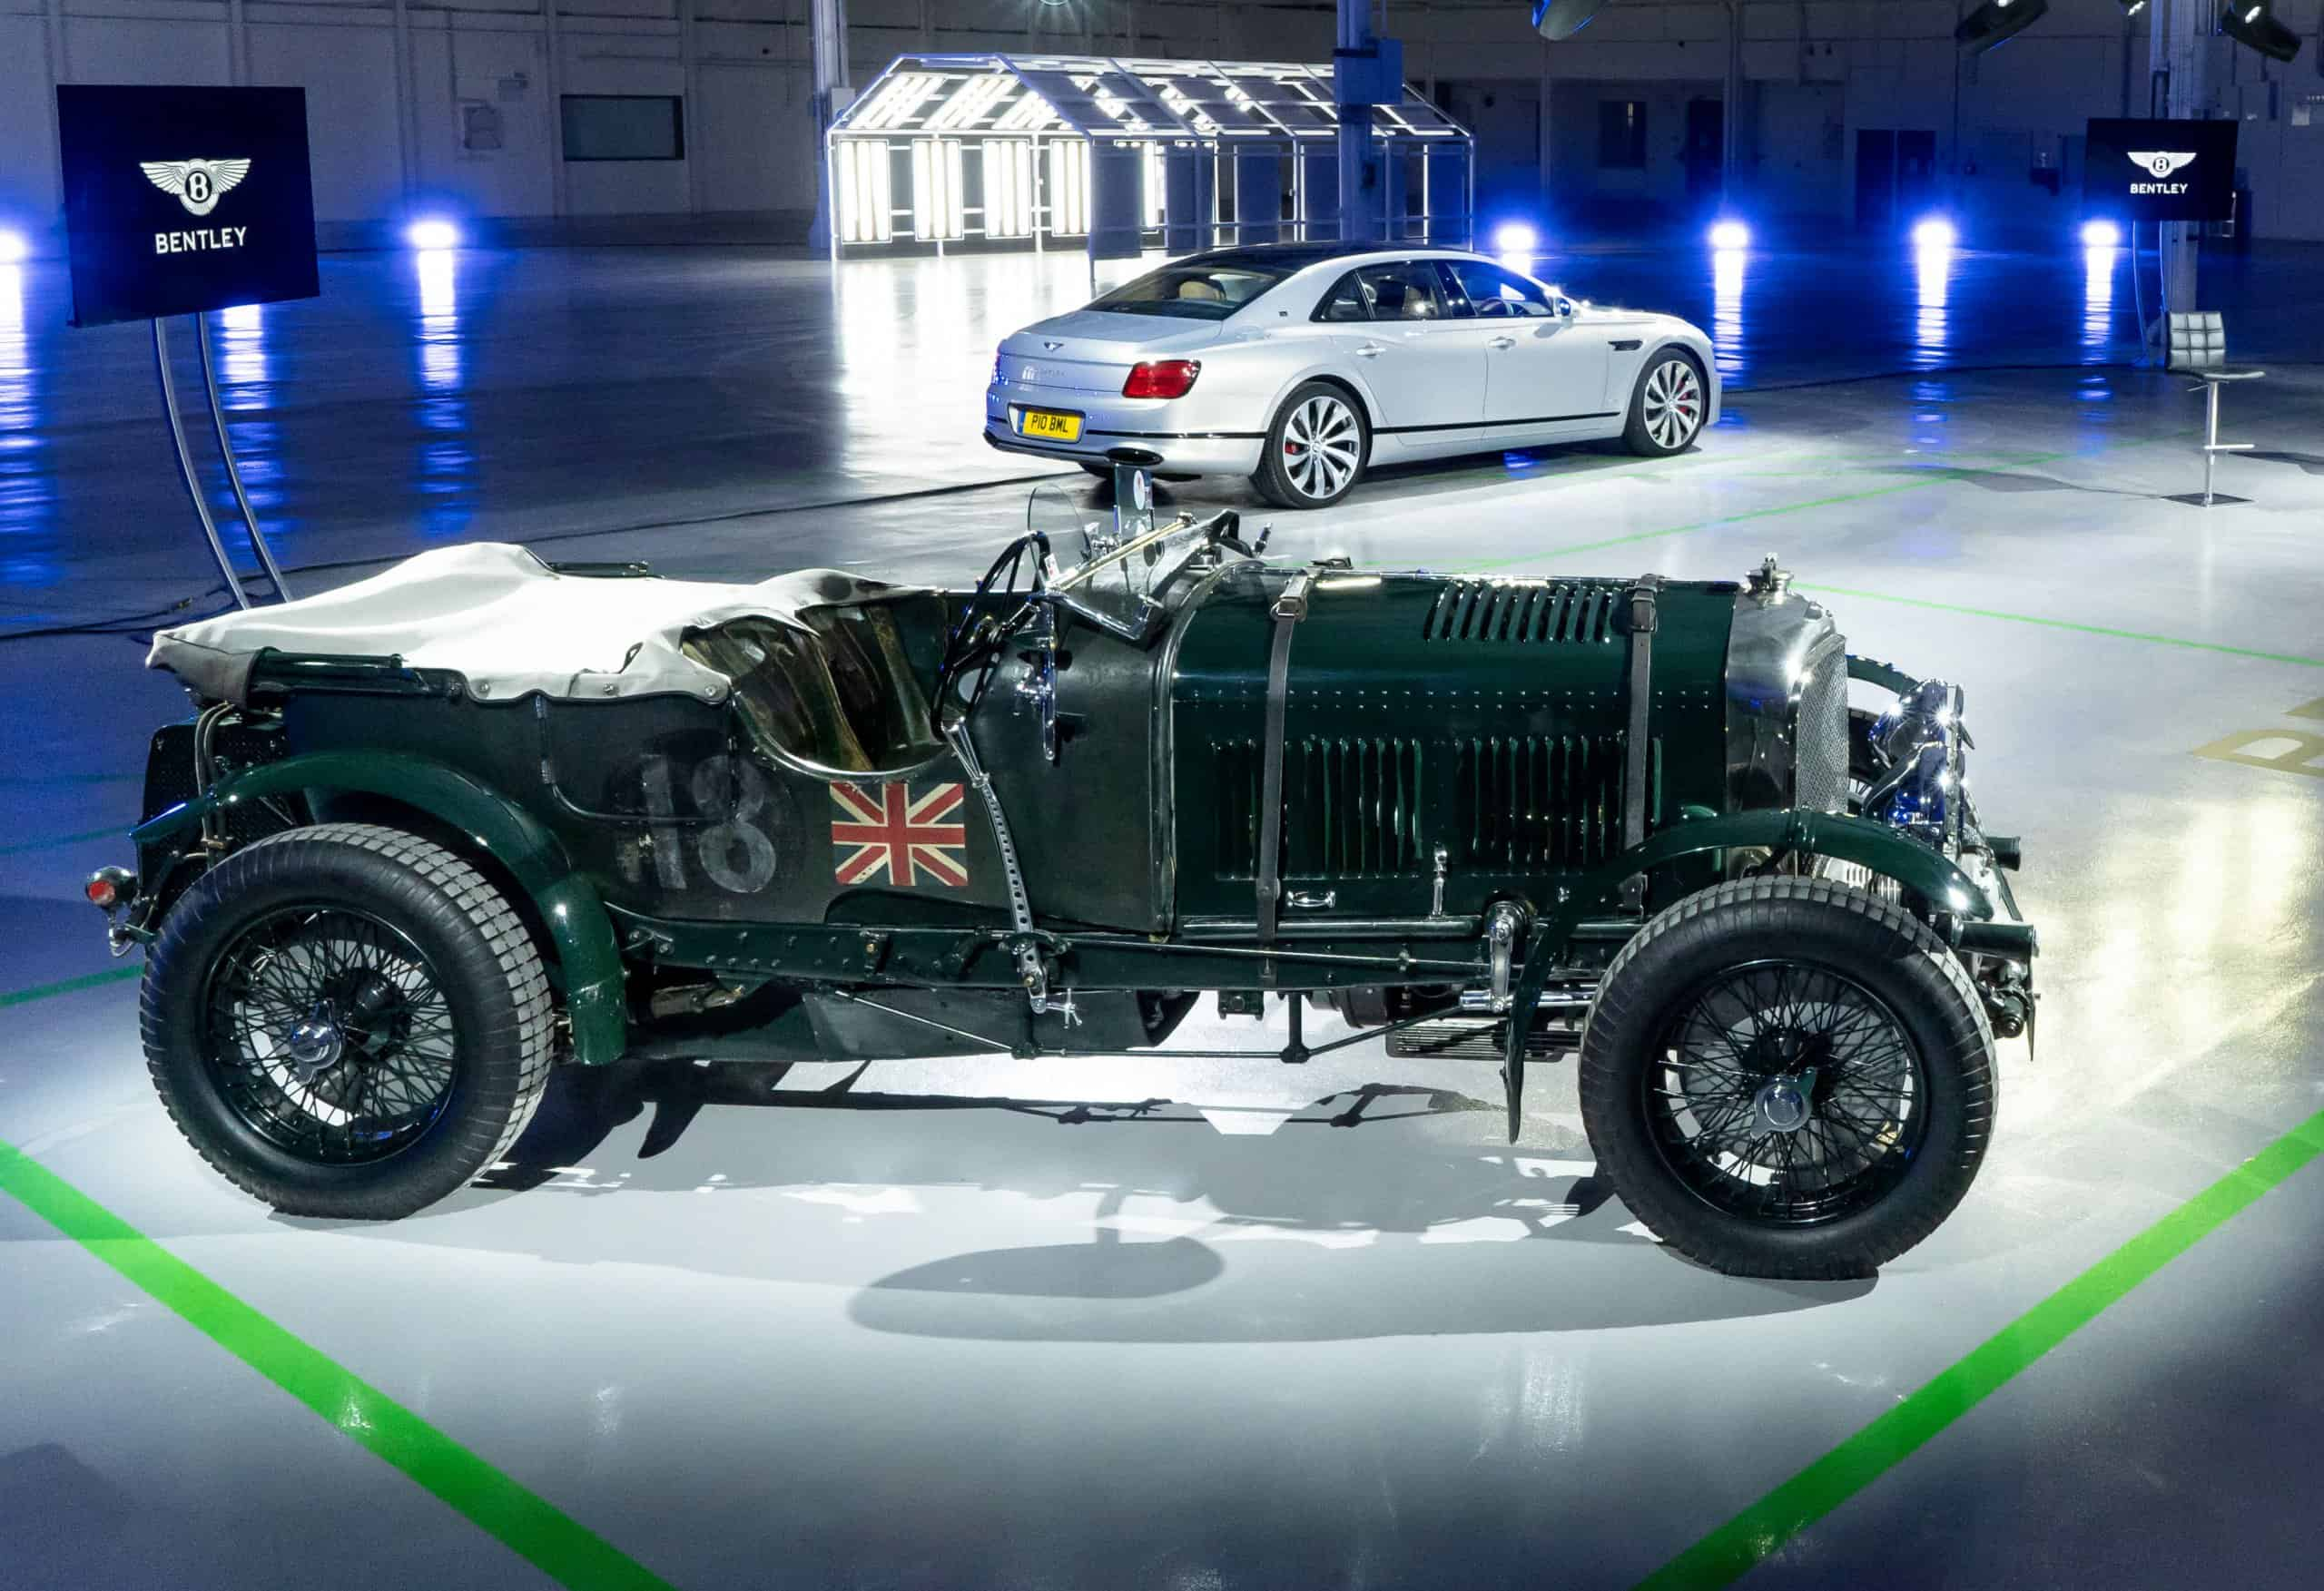 Bentley Plans Exclusively Electric Powered Fleet By 2030